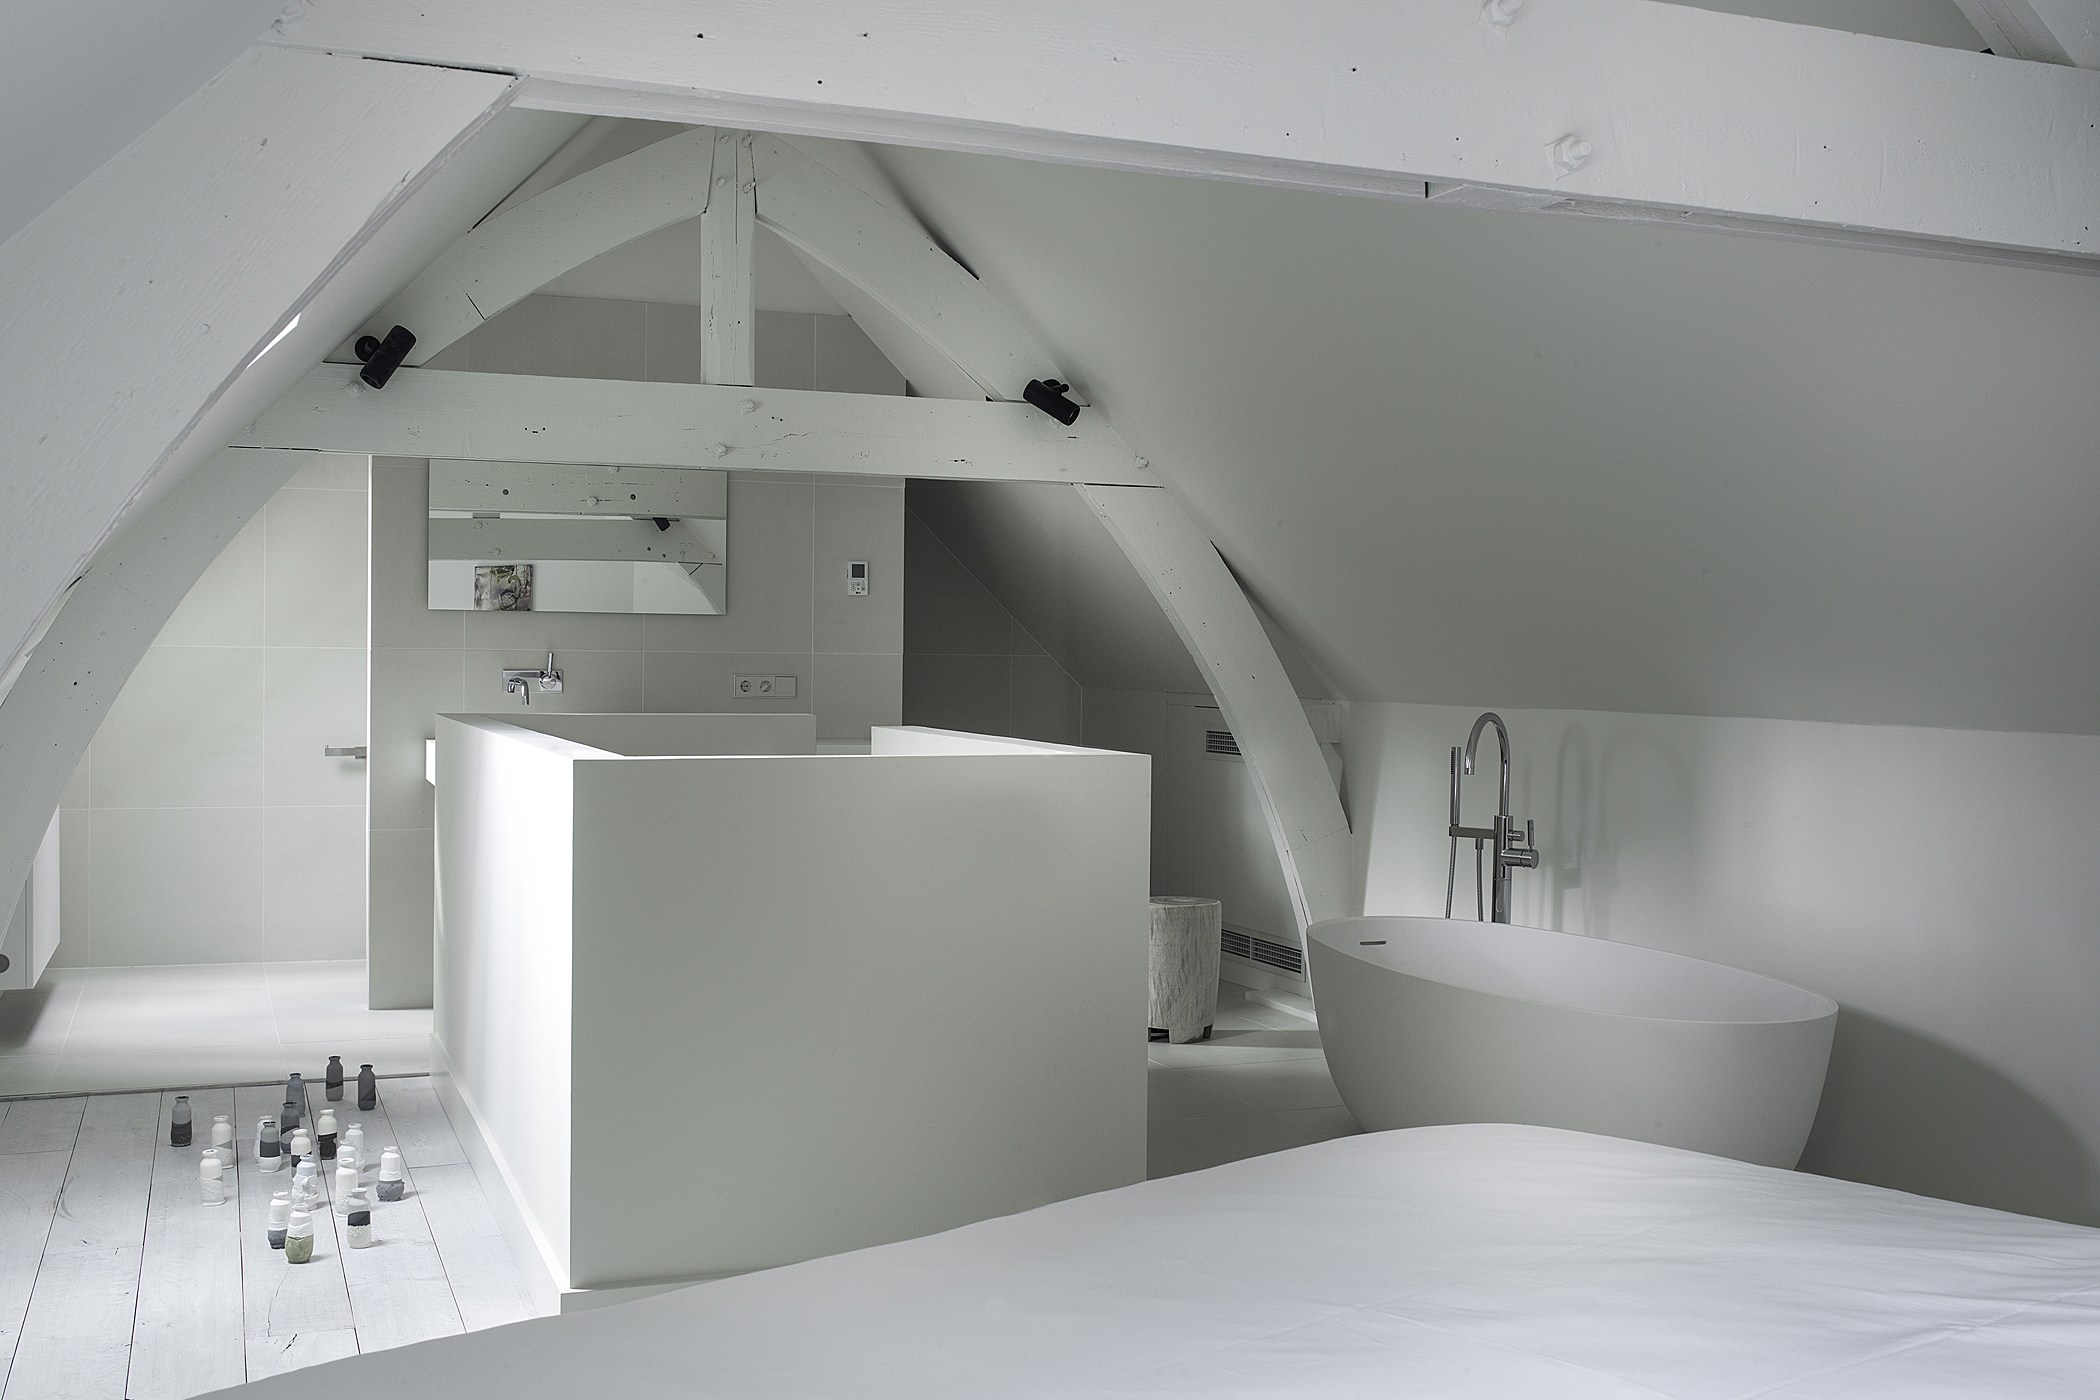 Kazerne Corner Duplex Bath and Bedroom Image Patrick Meis